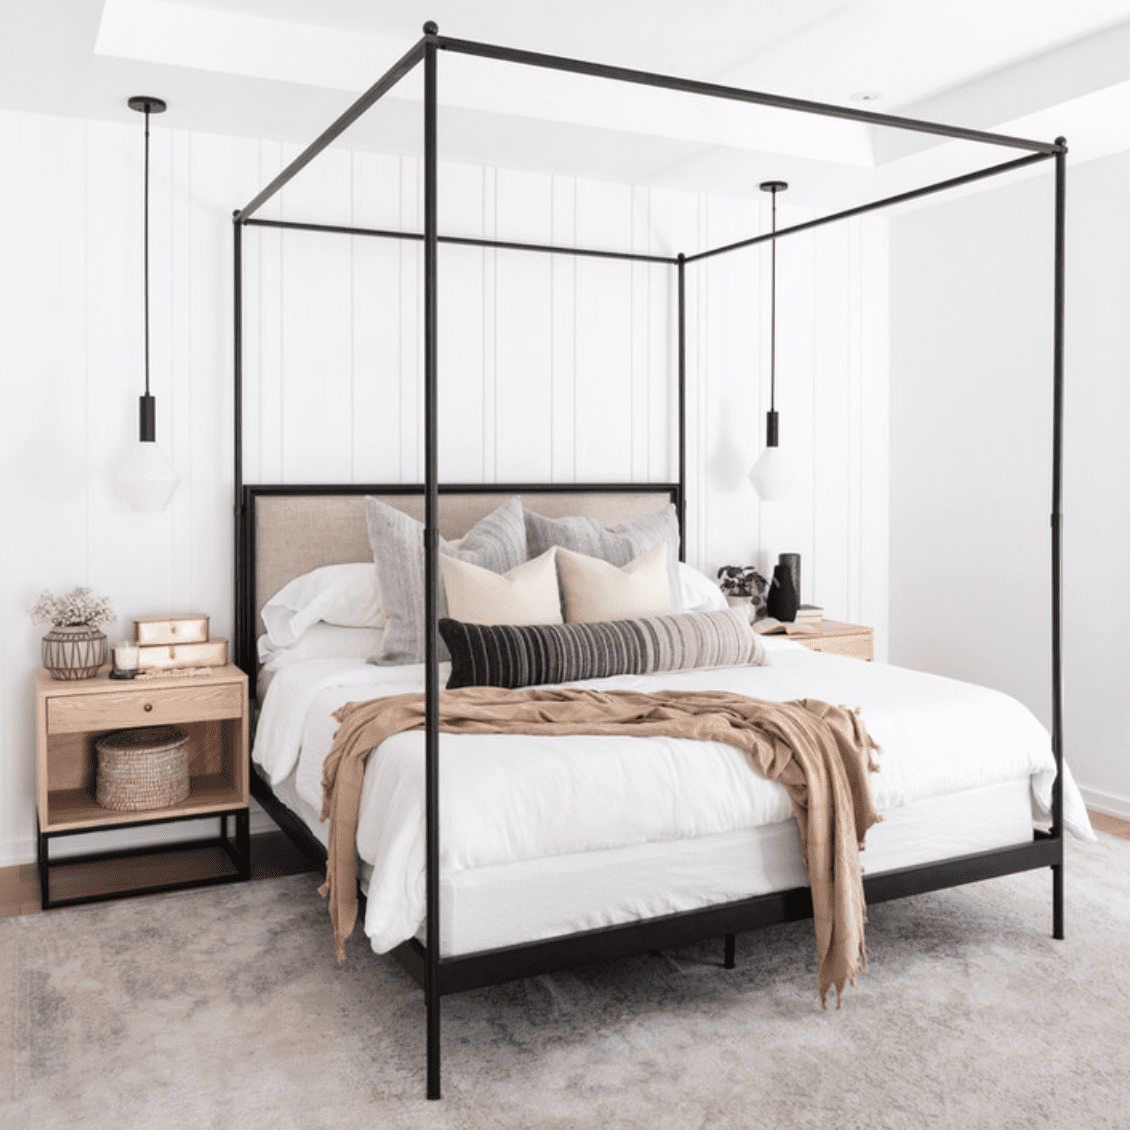 A bedroom with a black metal bed, white linens, and beige throw pillows and blankets